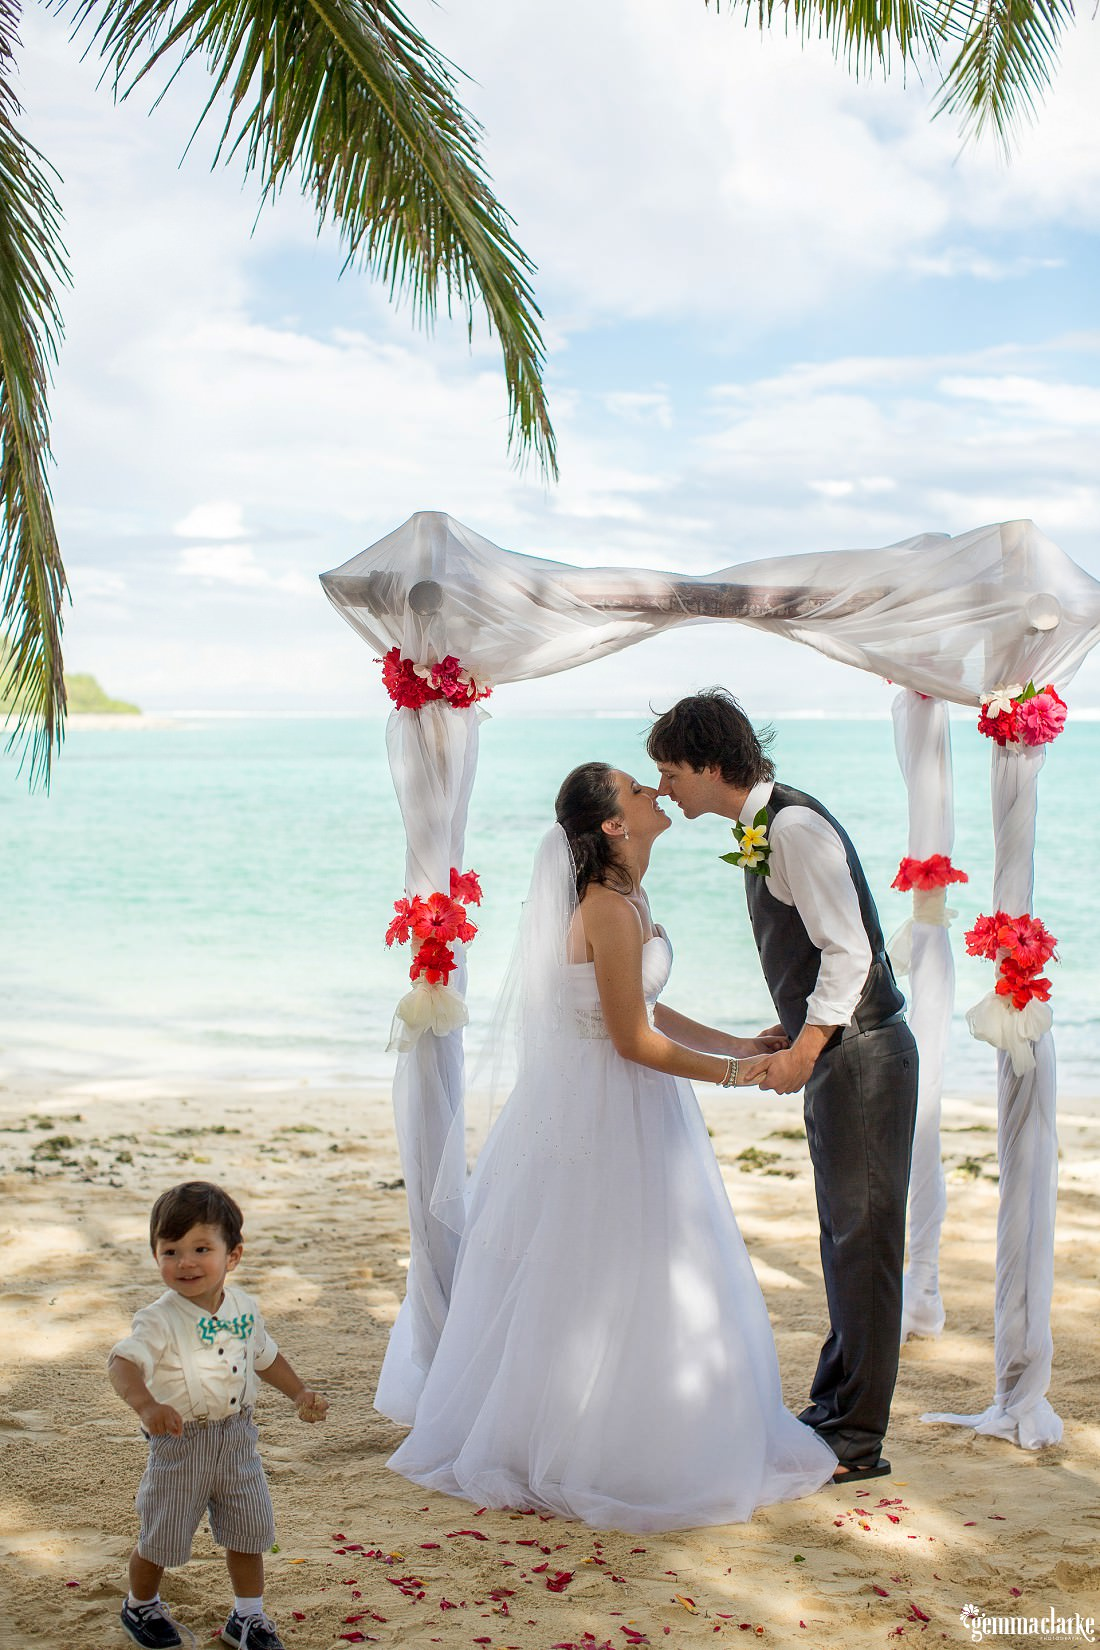 gemmaclarkephotography_south-pacific-destination-wedding_island-wedding_natalie-and-alex_0041